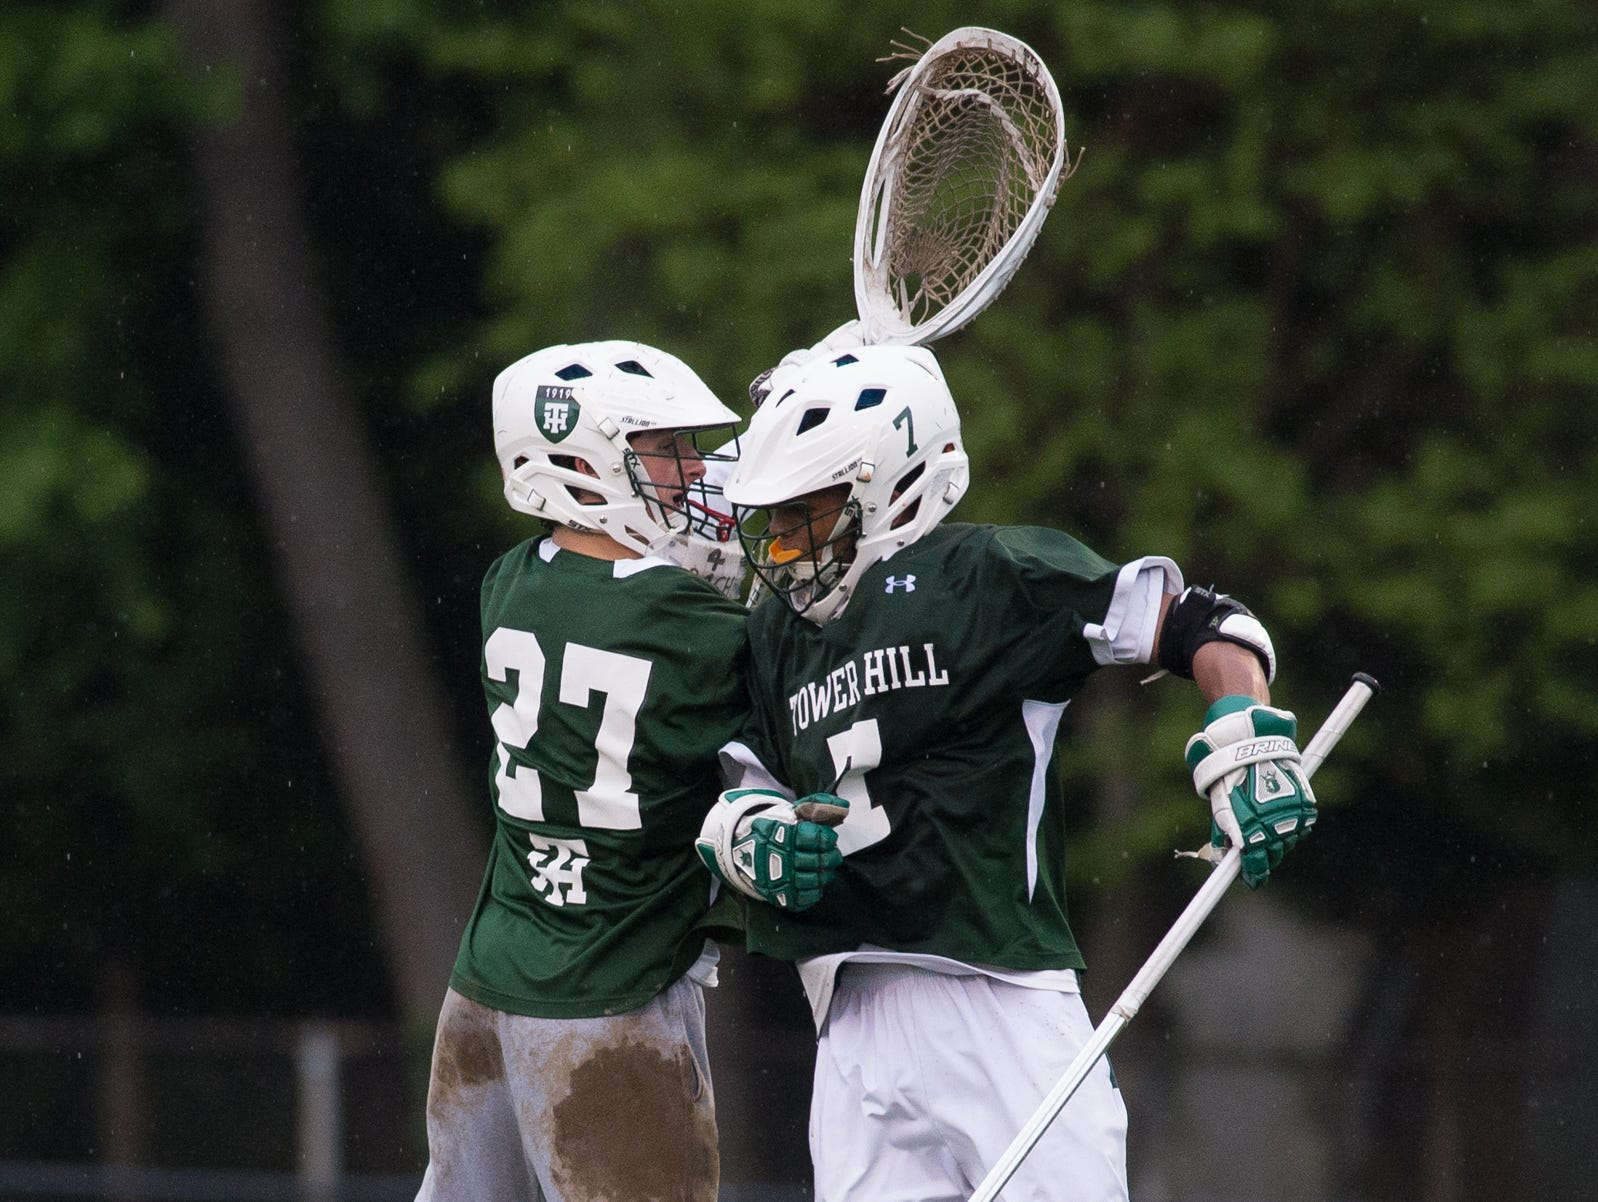 Tower Hill's Michael Gianforcaro (27), left and teammate Kevin Turner (7) jump into the air, congratulating each other, after their 11-9 win over Caesar Rodney.